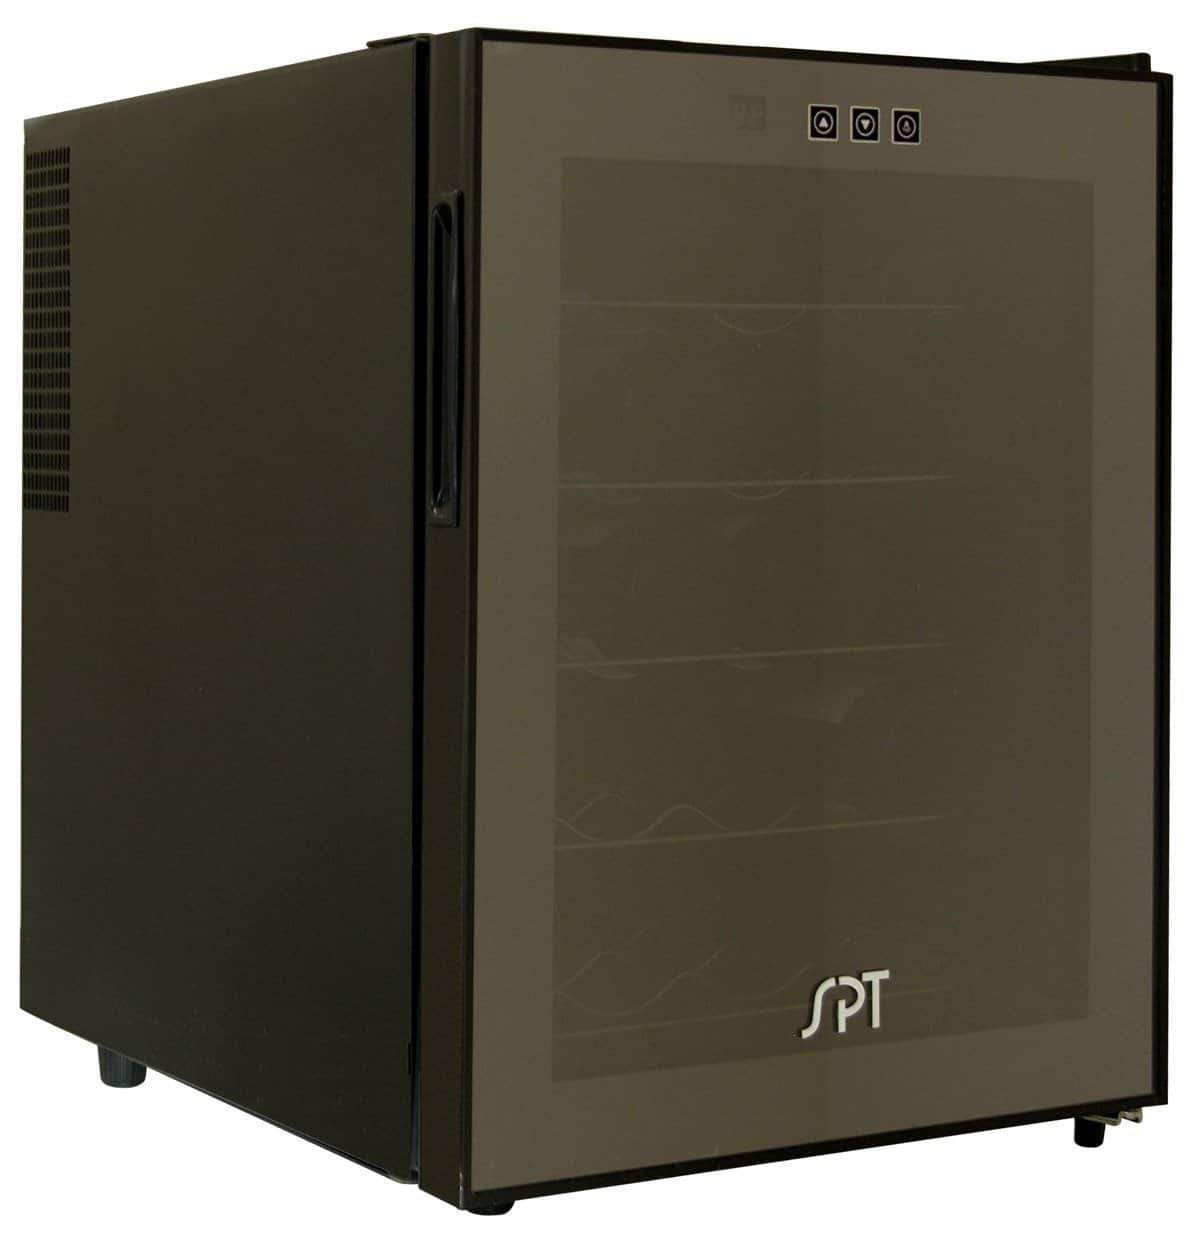 Best Wine Refrigerator: Coolers Reviews & Consumer Reports 2